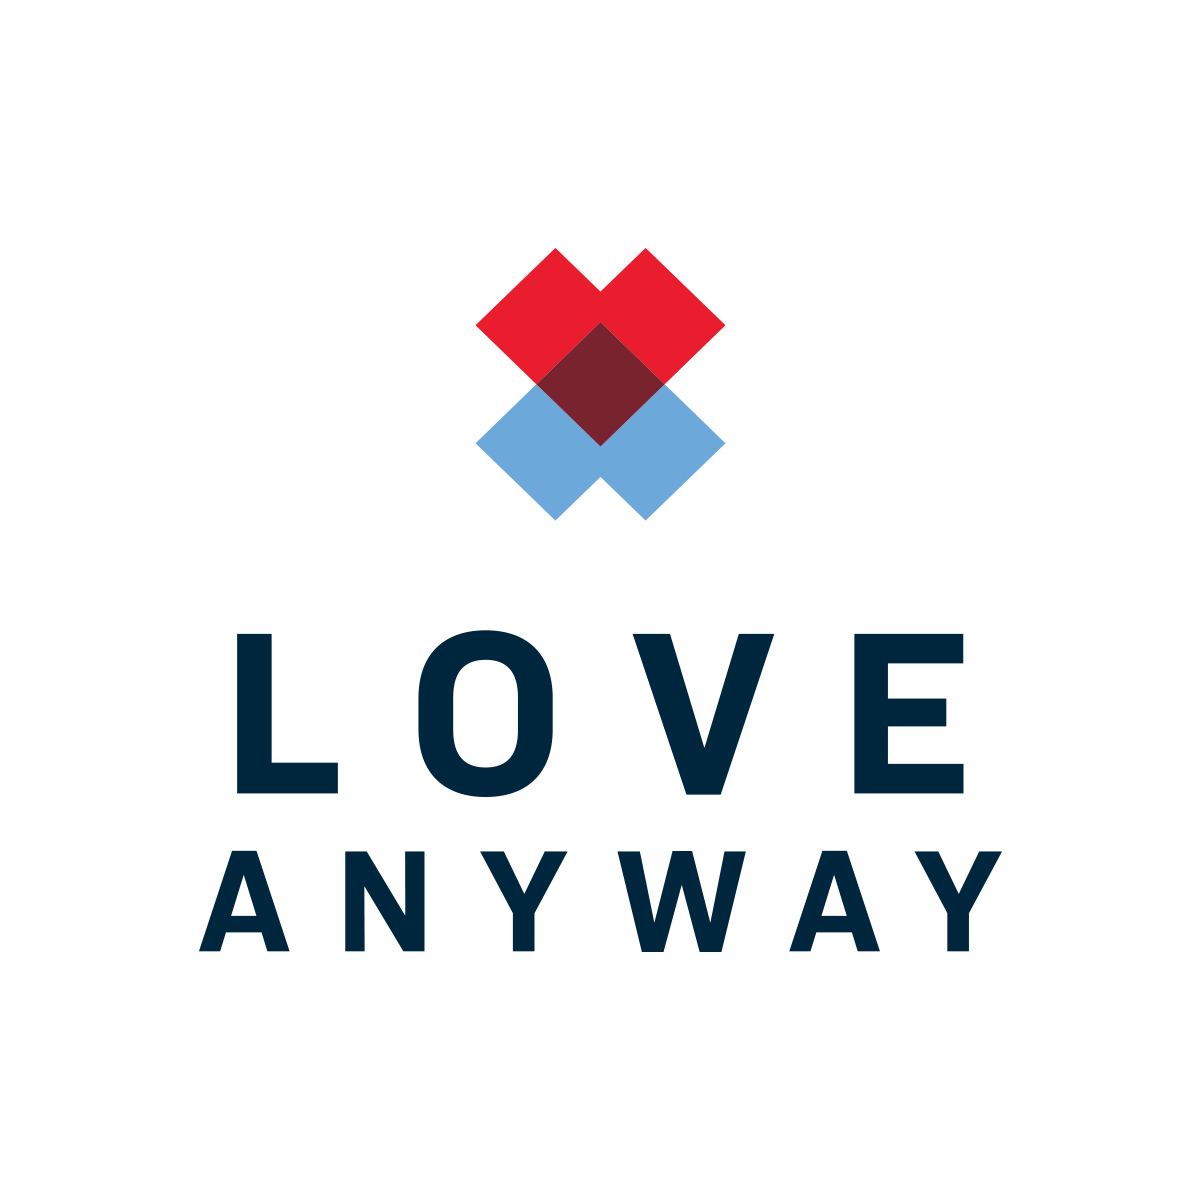 love-anyway